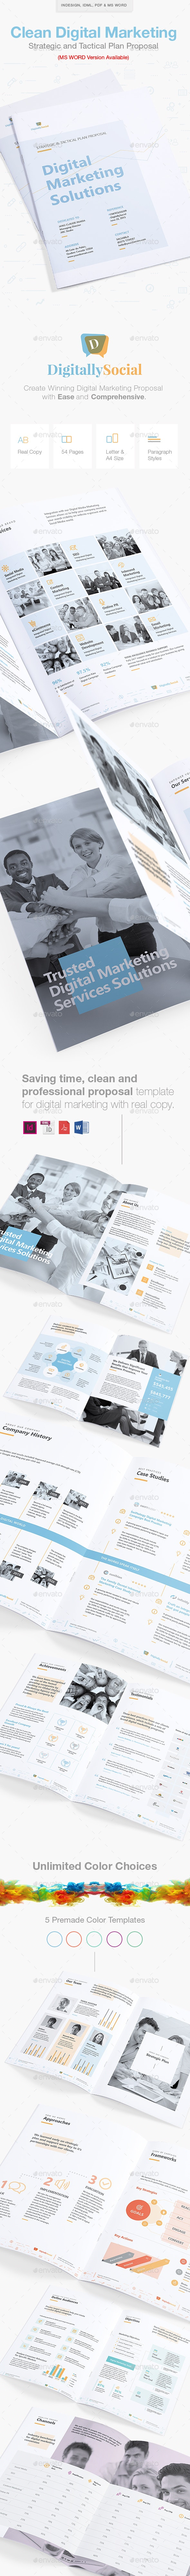 Clean Digital Marketing Proposal - Proposals & Invoices Stationery